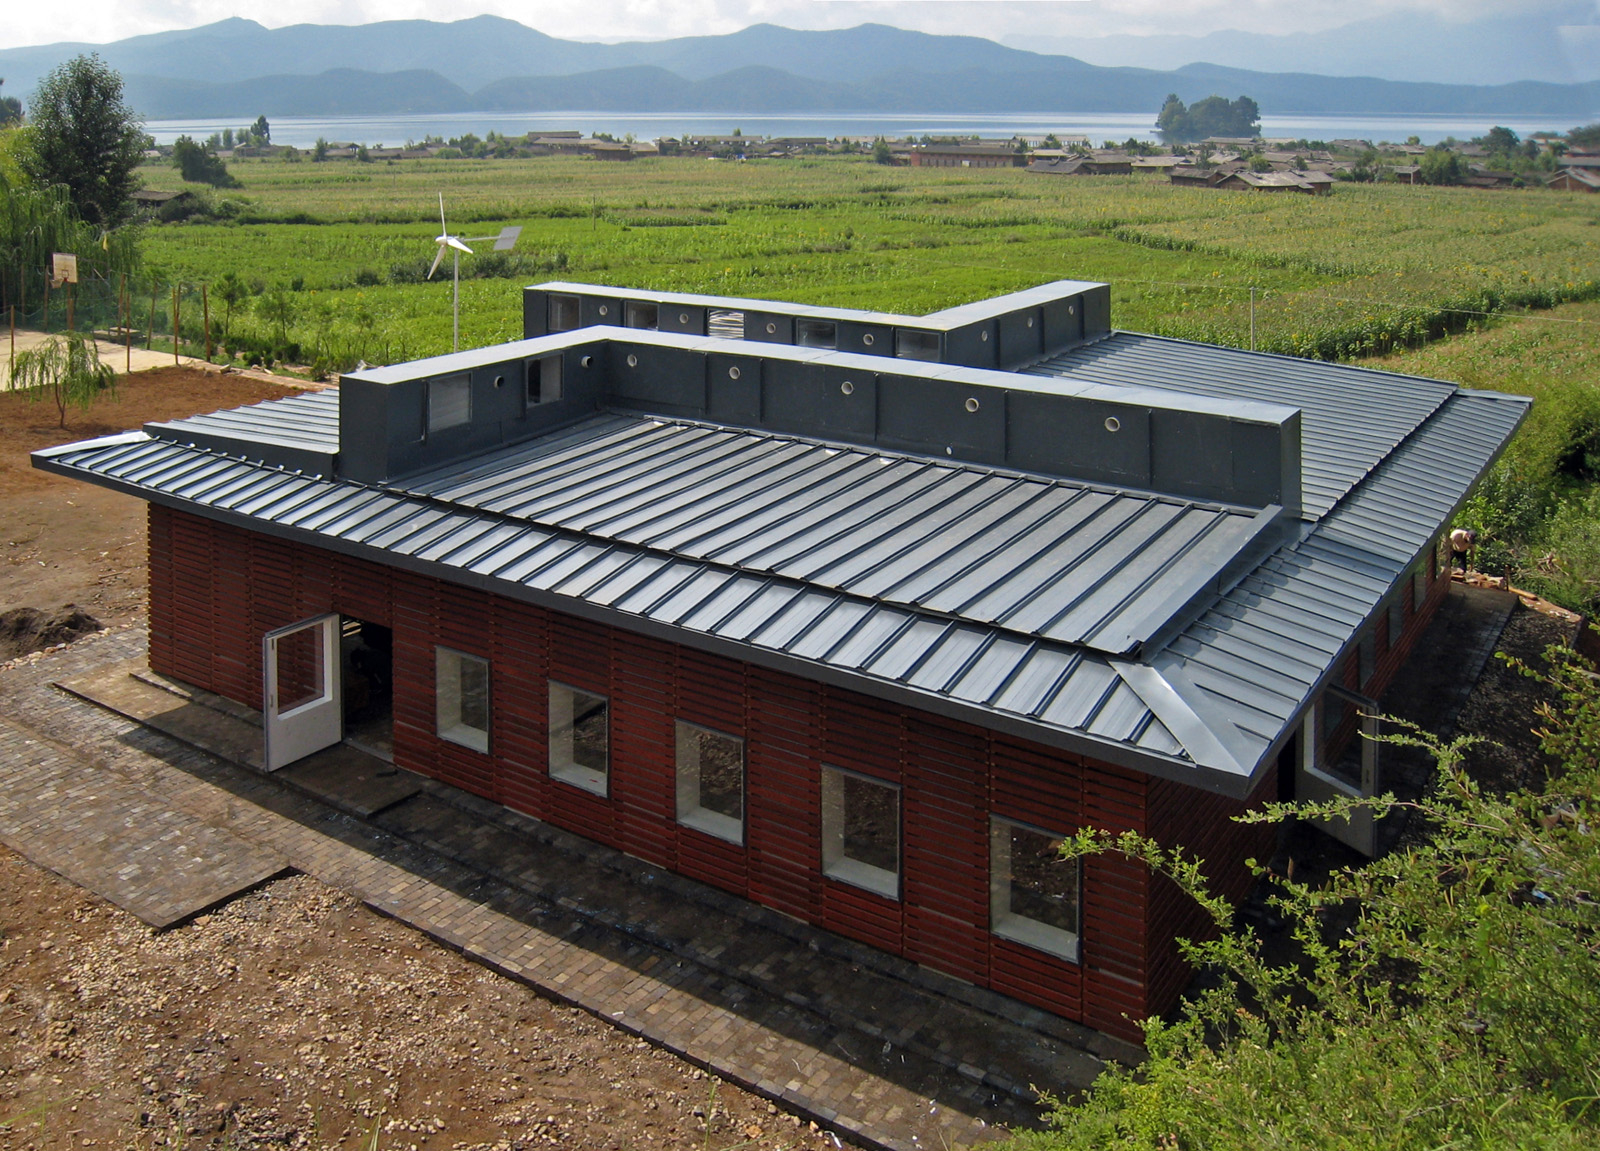 The New Bud Study Hall is well integrated into the scenic views of Lugu Lake as well as the existing village fabric